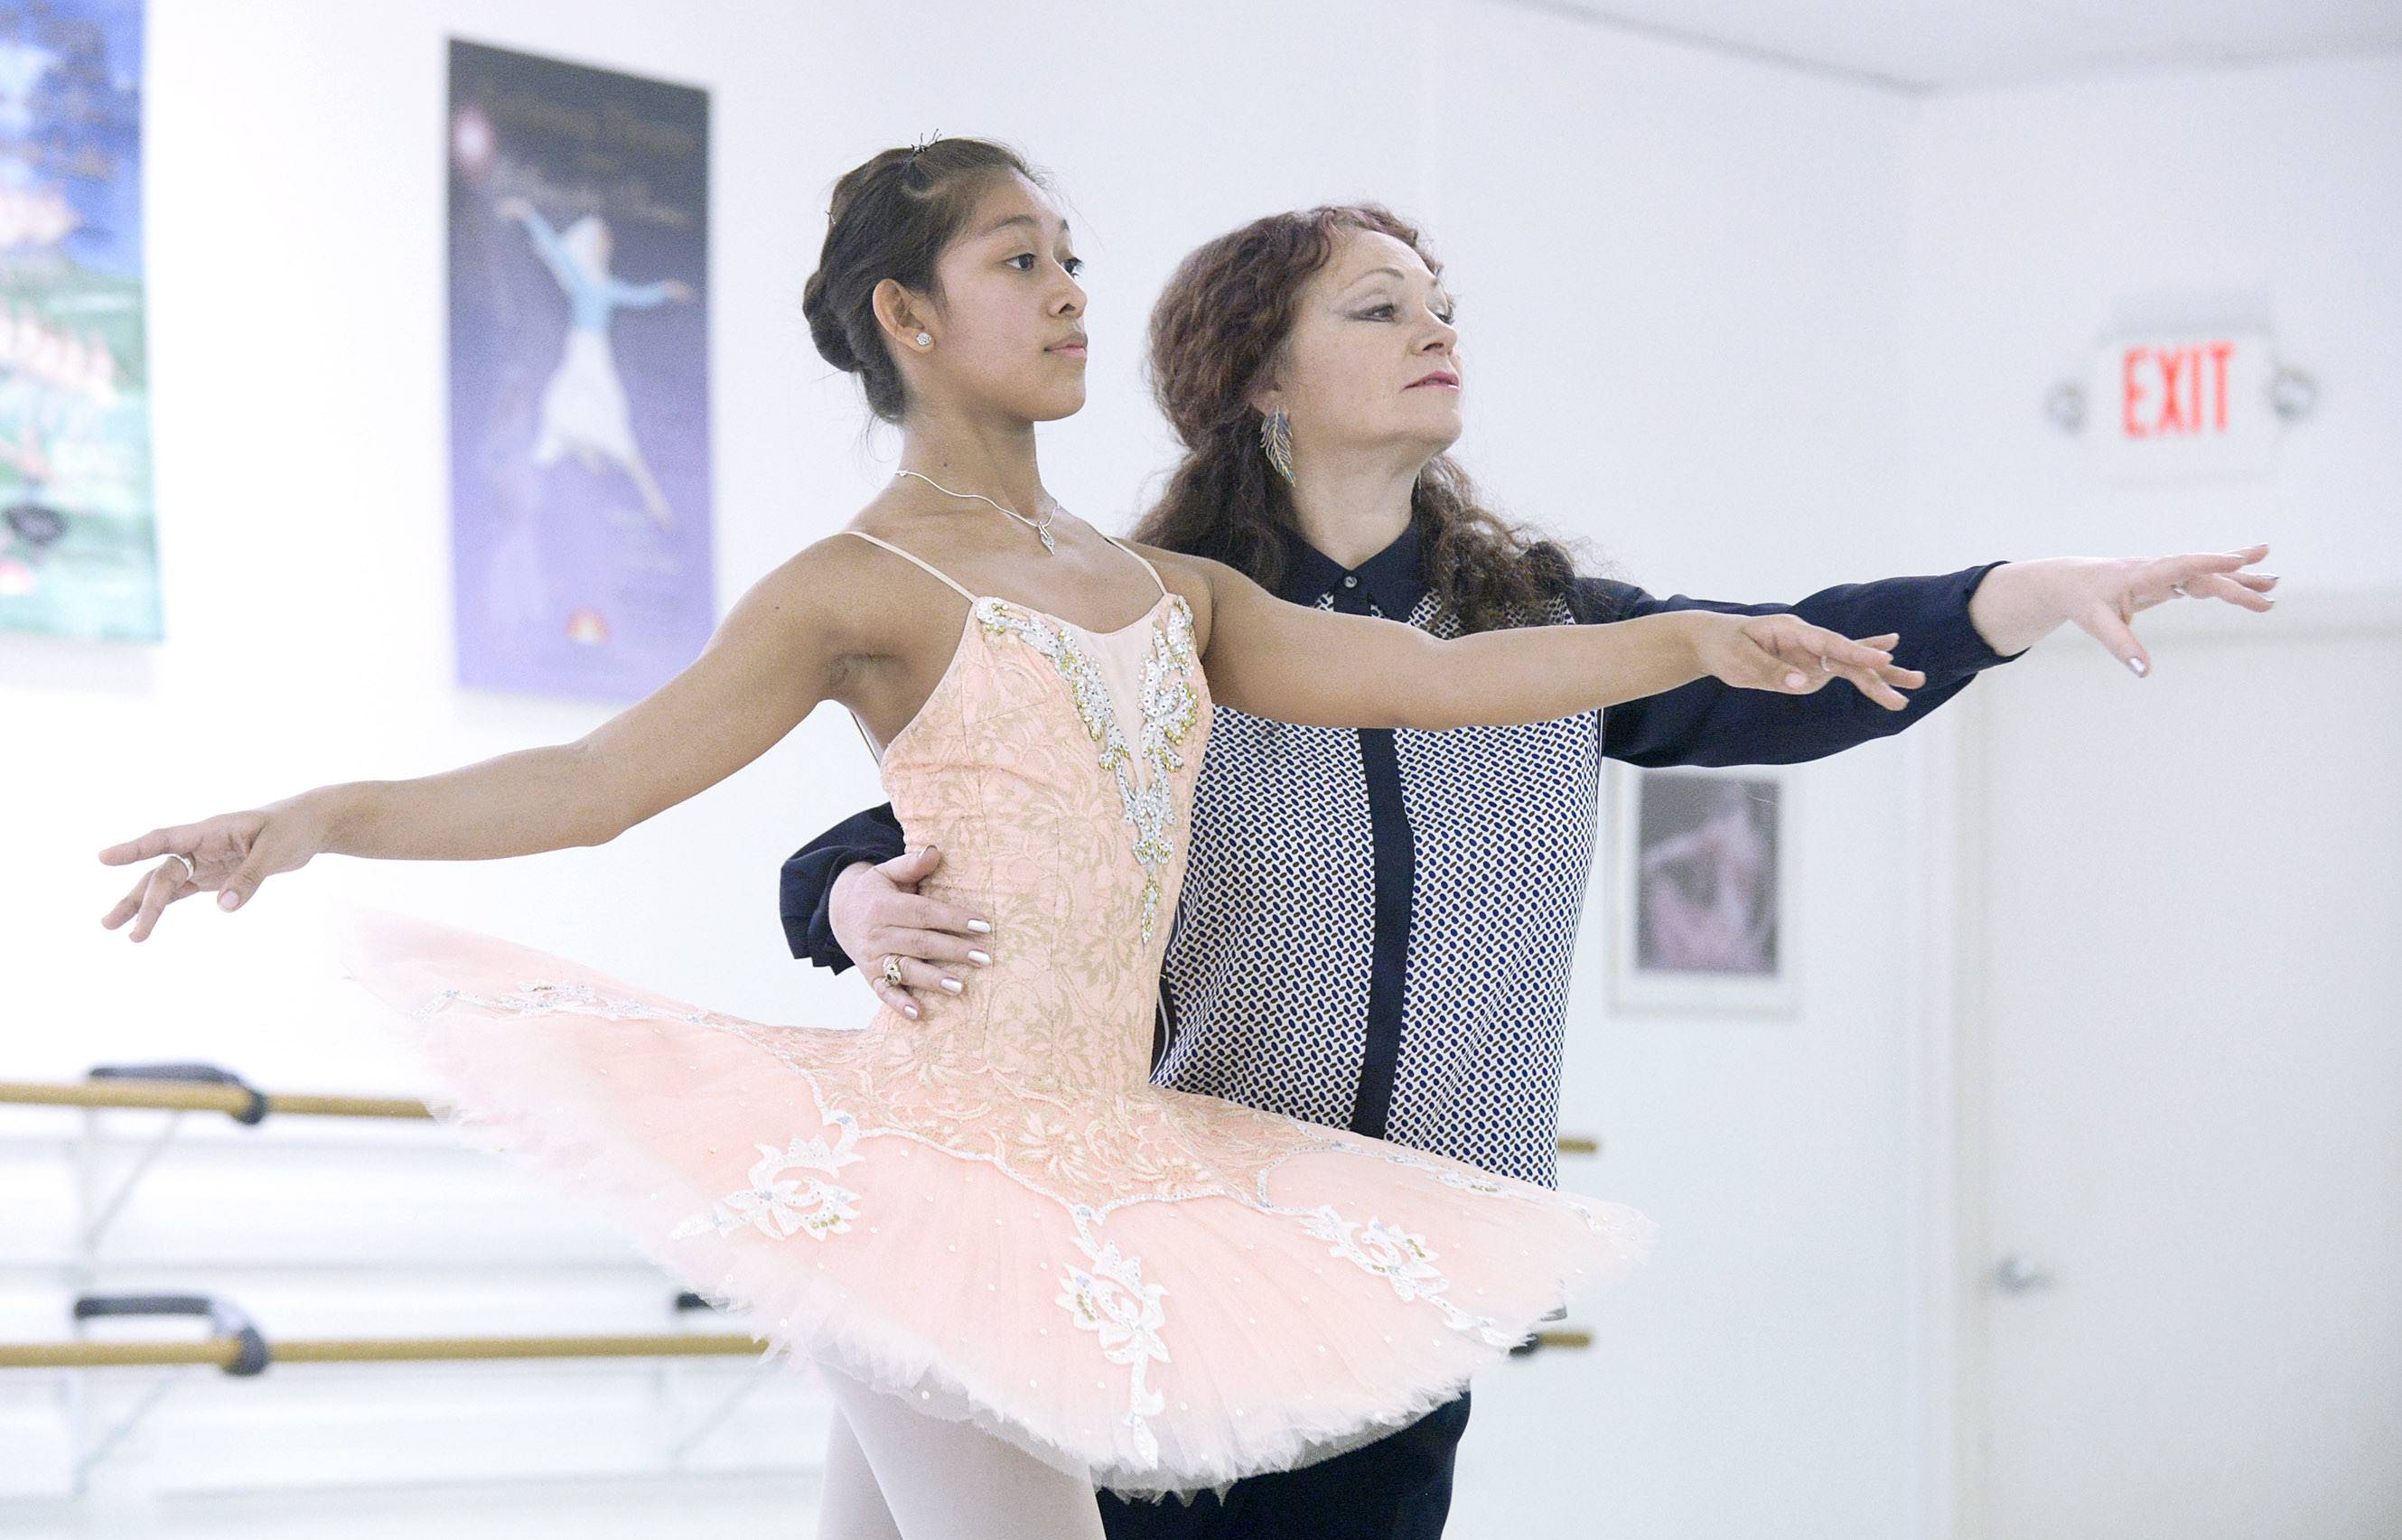 Dancer Jasmine Getz of Sleepy Hollow, a student at Hampshire High School, with her ballet instructor, Tatyana Mazur, at the Faubourg School of Ballet in Hanover Park. Mazur says Jasmine's work ethic and natural ability make her a special dancer.